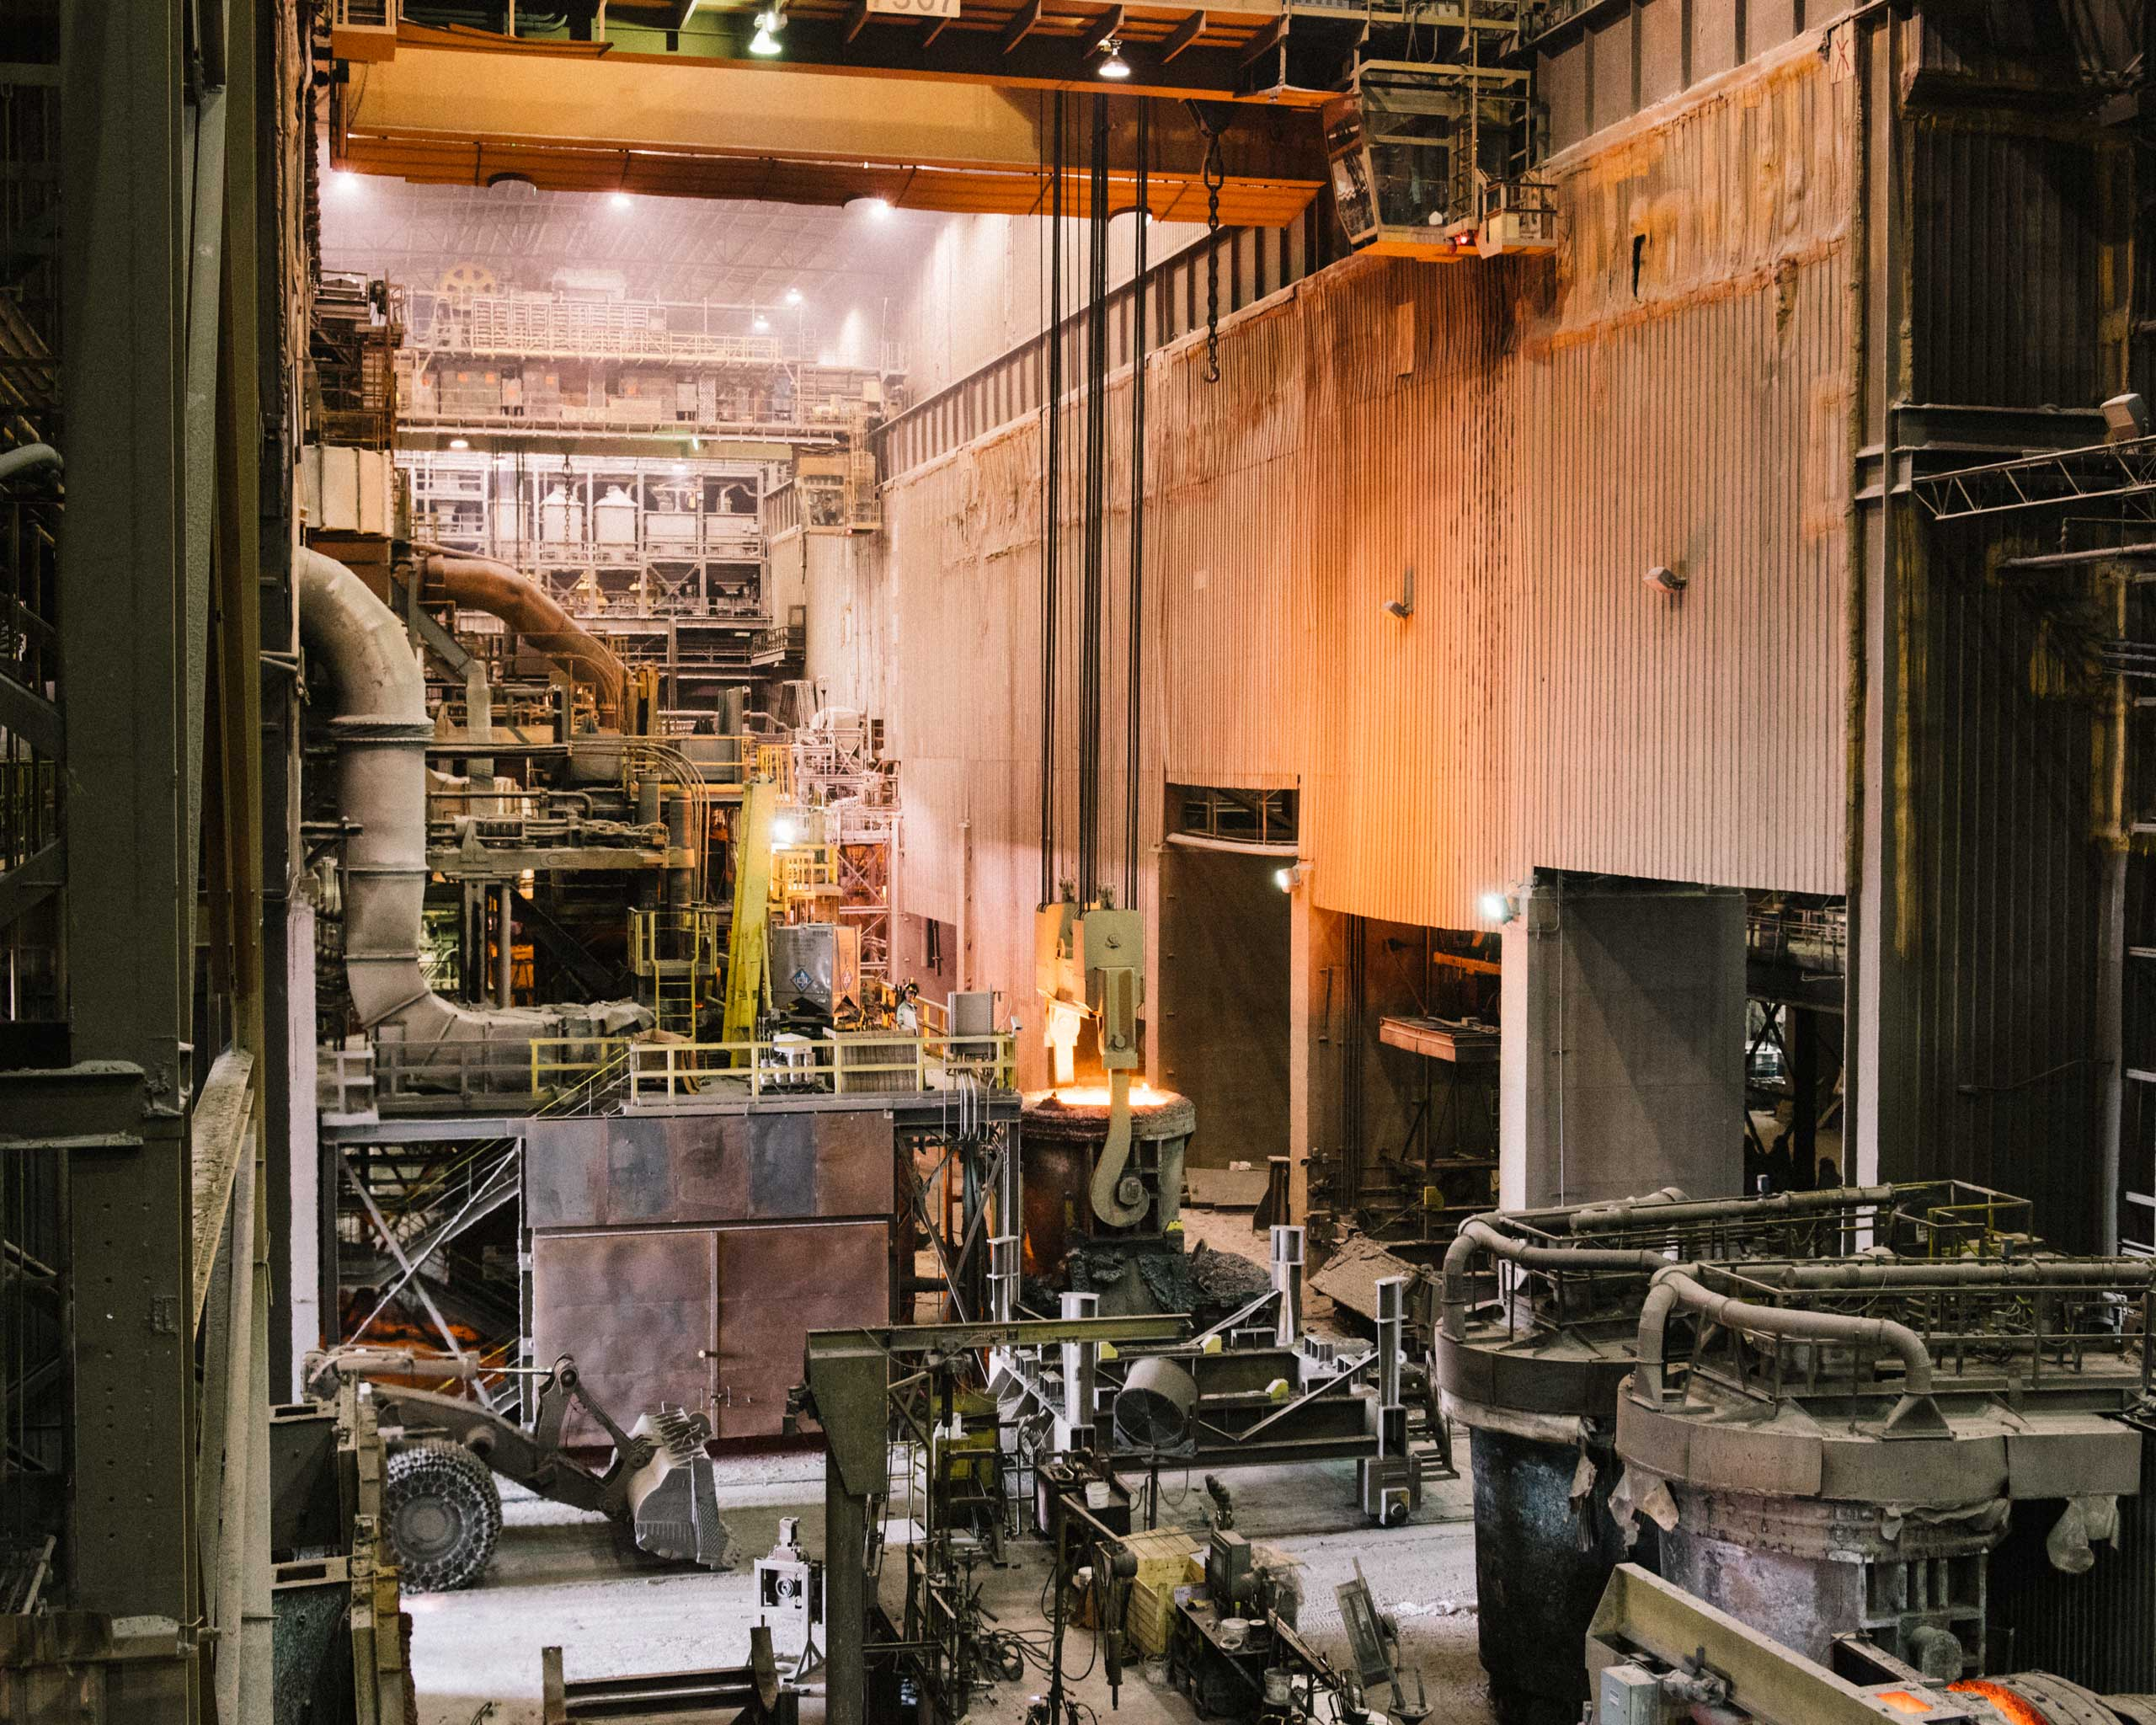 An open ladle with over 100 tons of molten steel is lifted in the center of the mill, Crawfordsville, Ind. on Aug. 25, 2014.